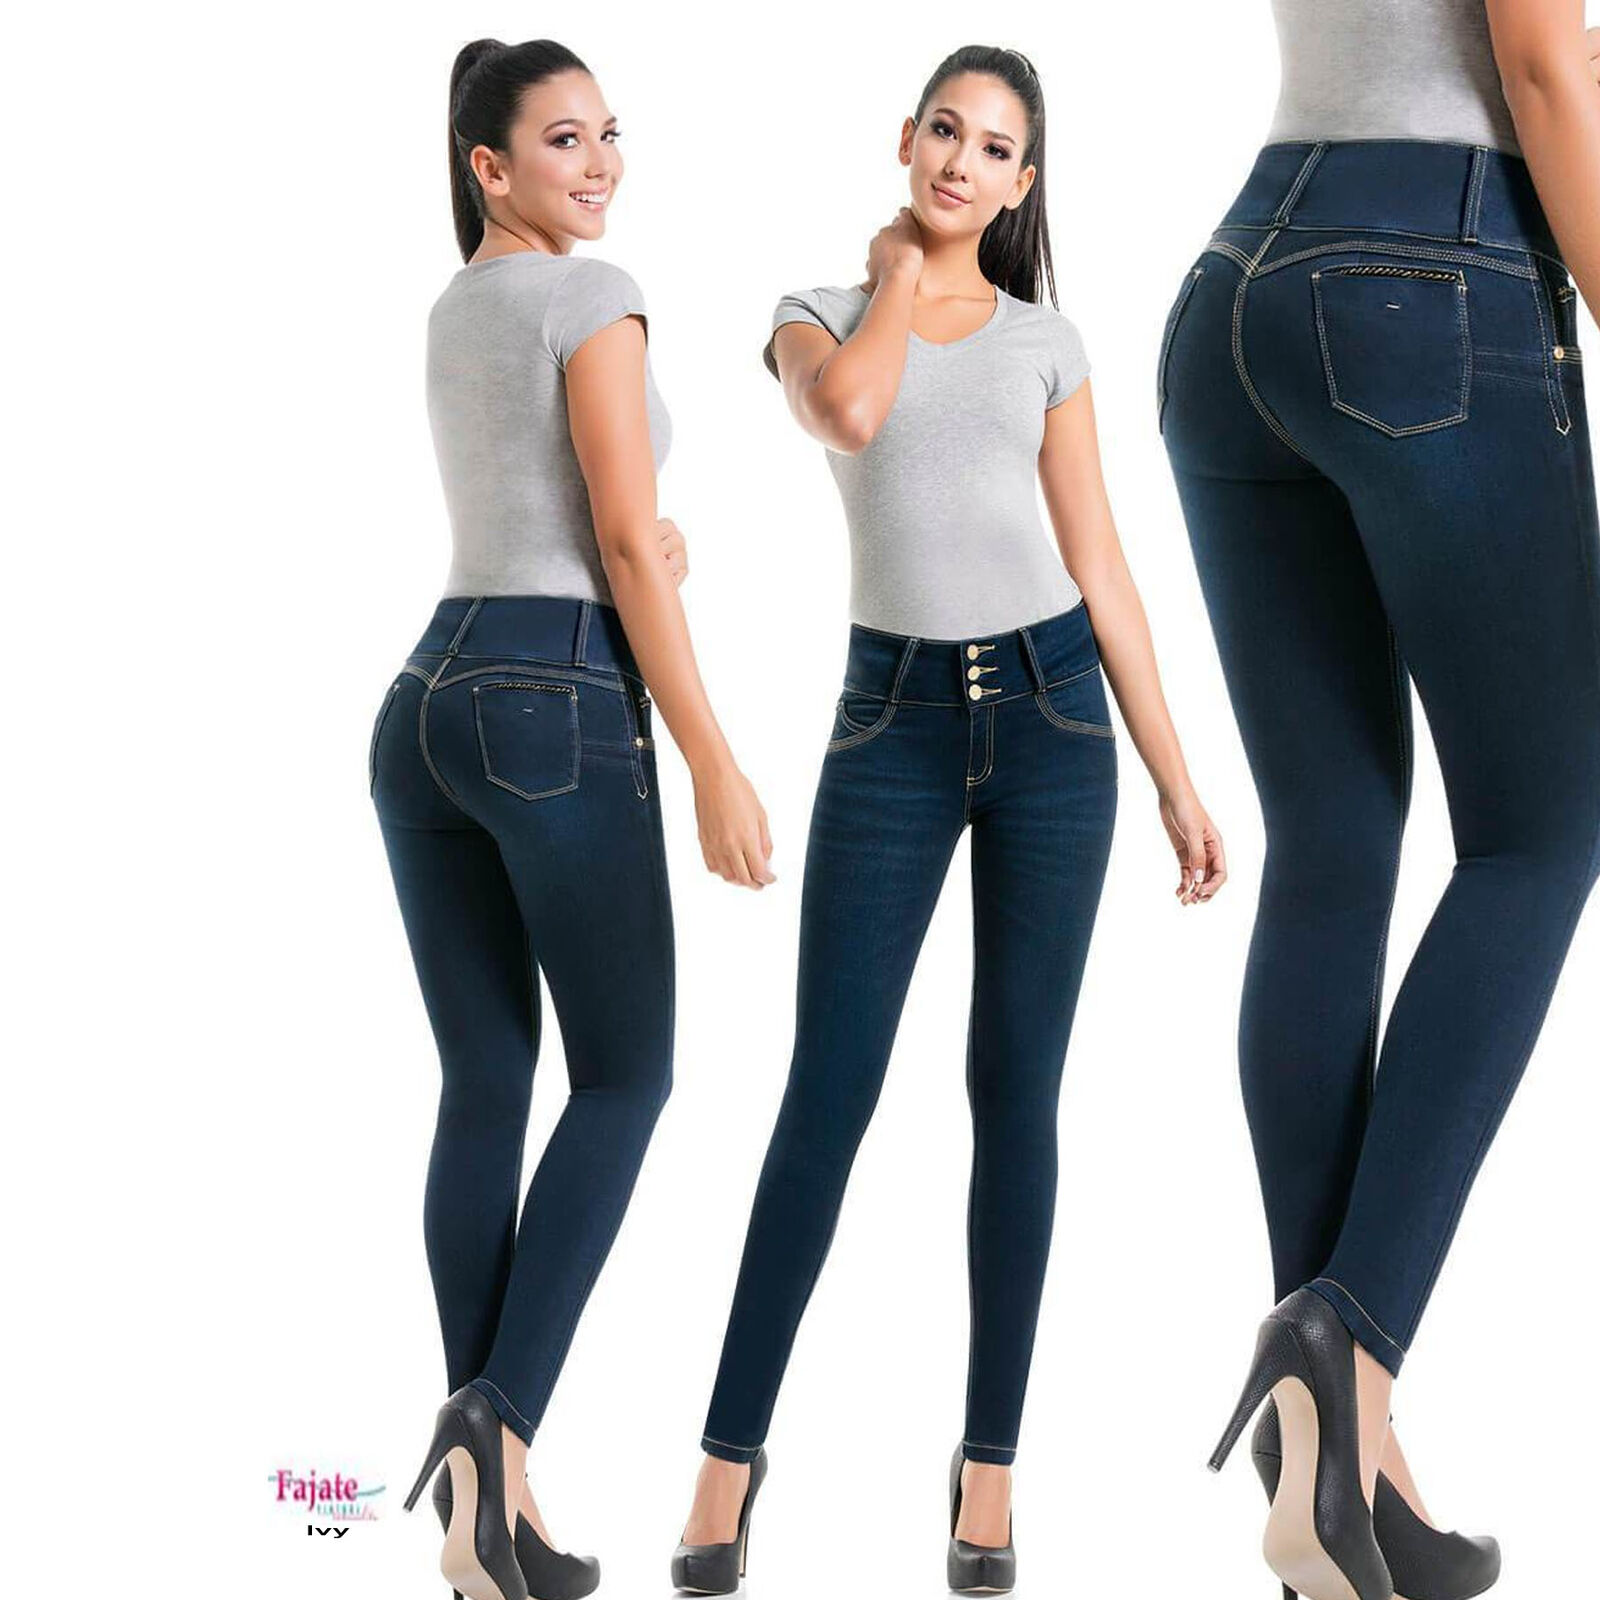 Fajas Colombian Push Up Jeans Butt Lifter Jeans Levanta Cola High Waist Slimming